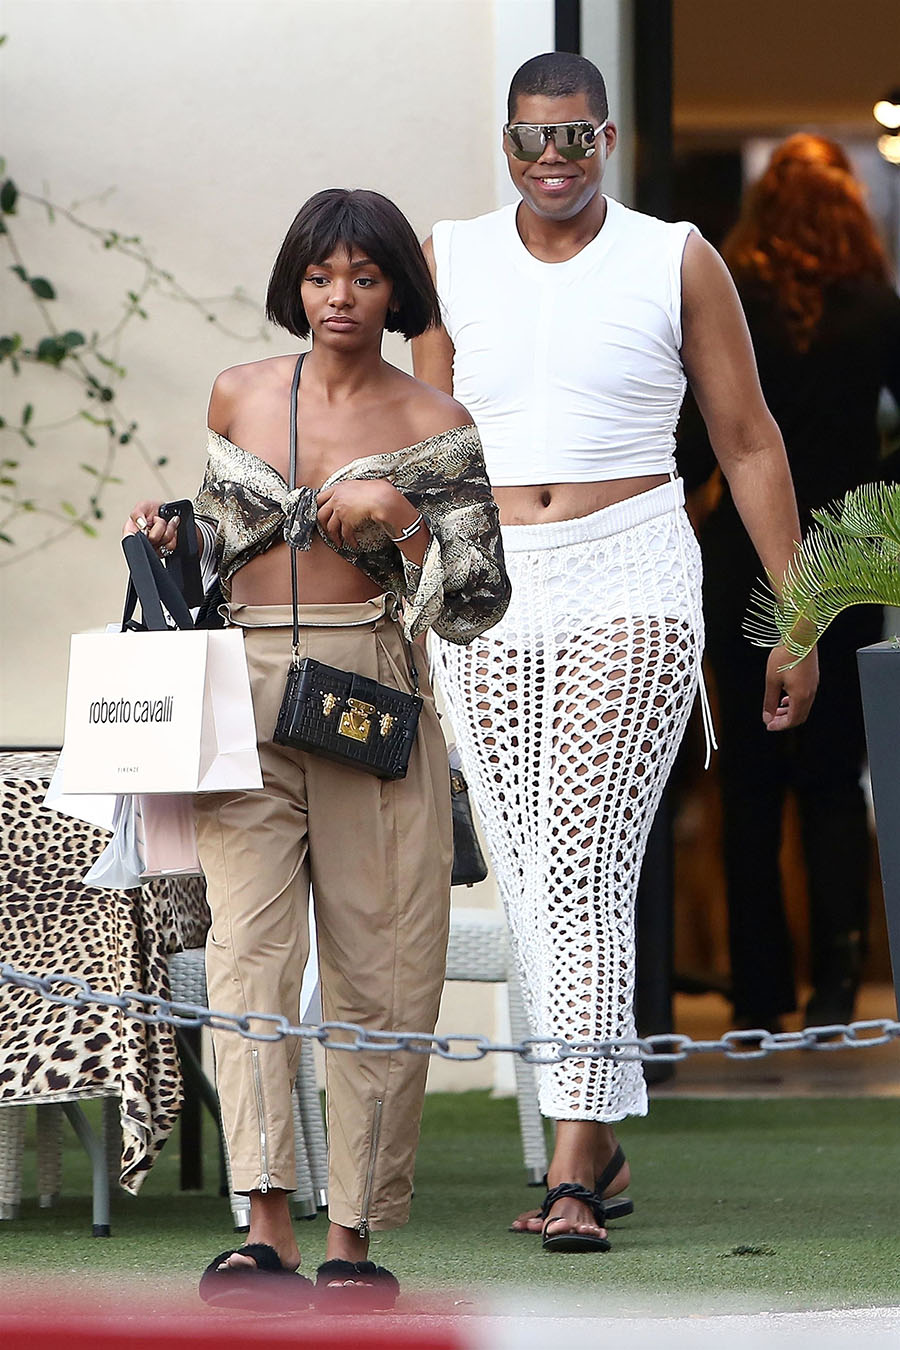 ej johnson and his sister elisa johnson were seen doing